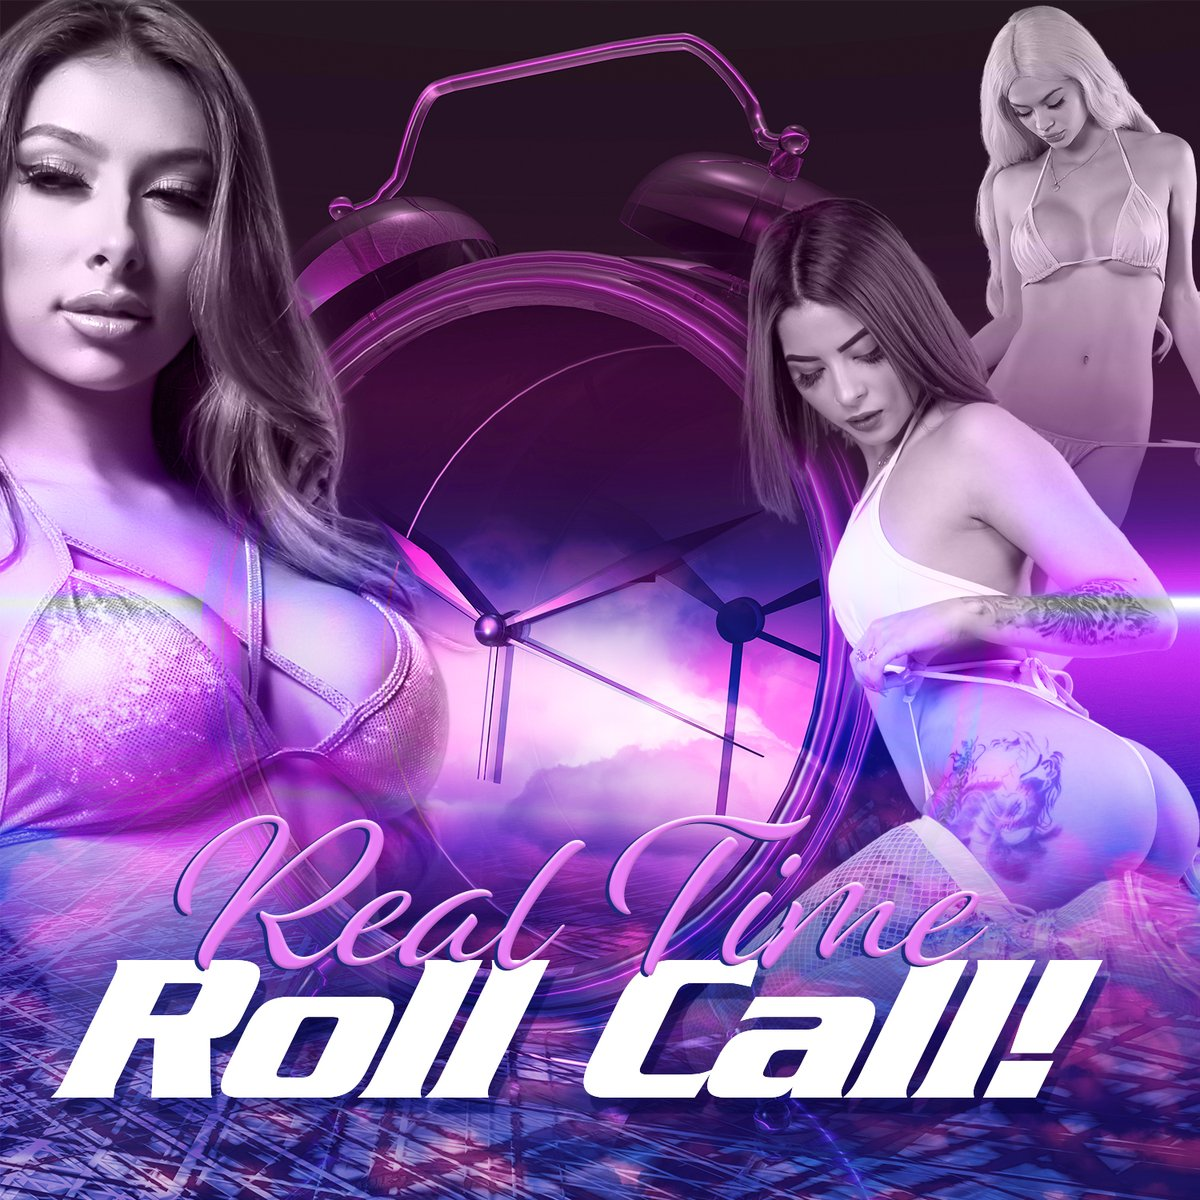 AMELIA, PRADA, RAYNE, ANGEL, TRINITY, NIRVANA, RILEY, RAVEN, COCO, BAILEY FOX, VIVIAN, SUMMER, KANDY & MARSELLA are here making Friday night extra freaky! Come have some fun with us!  . . . #RollCall #Sexy #MousesEar #Knoxville #StripJoint #StripClub